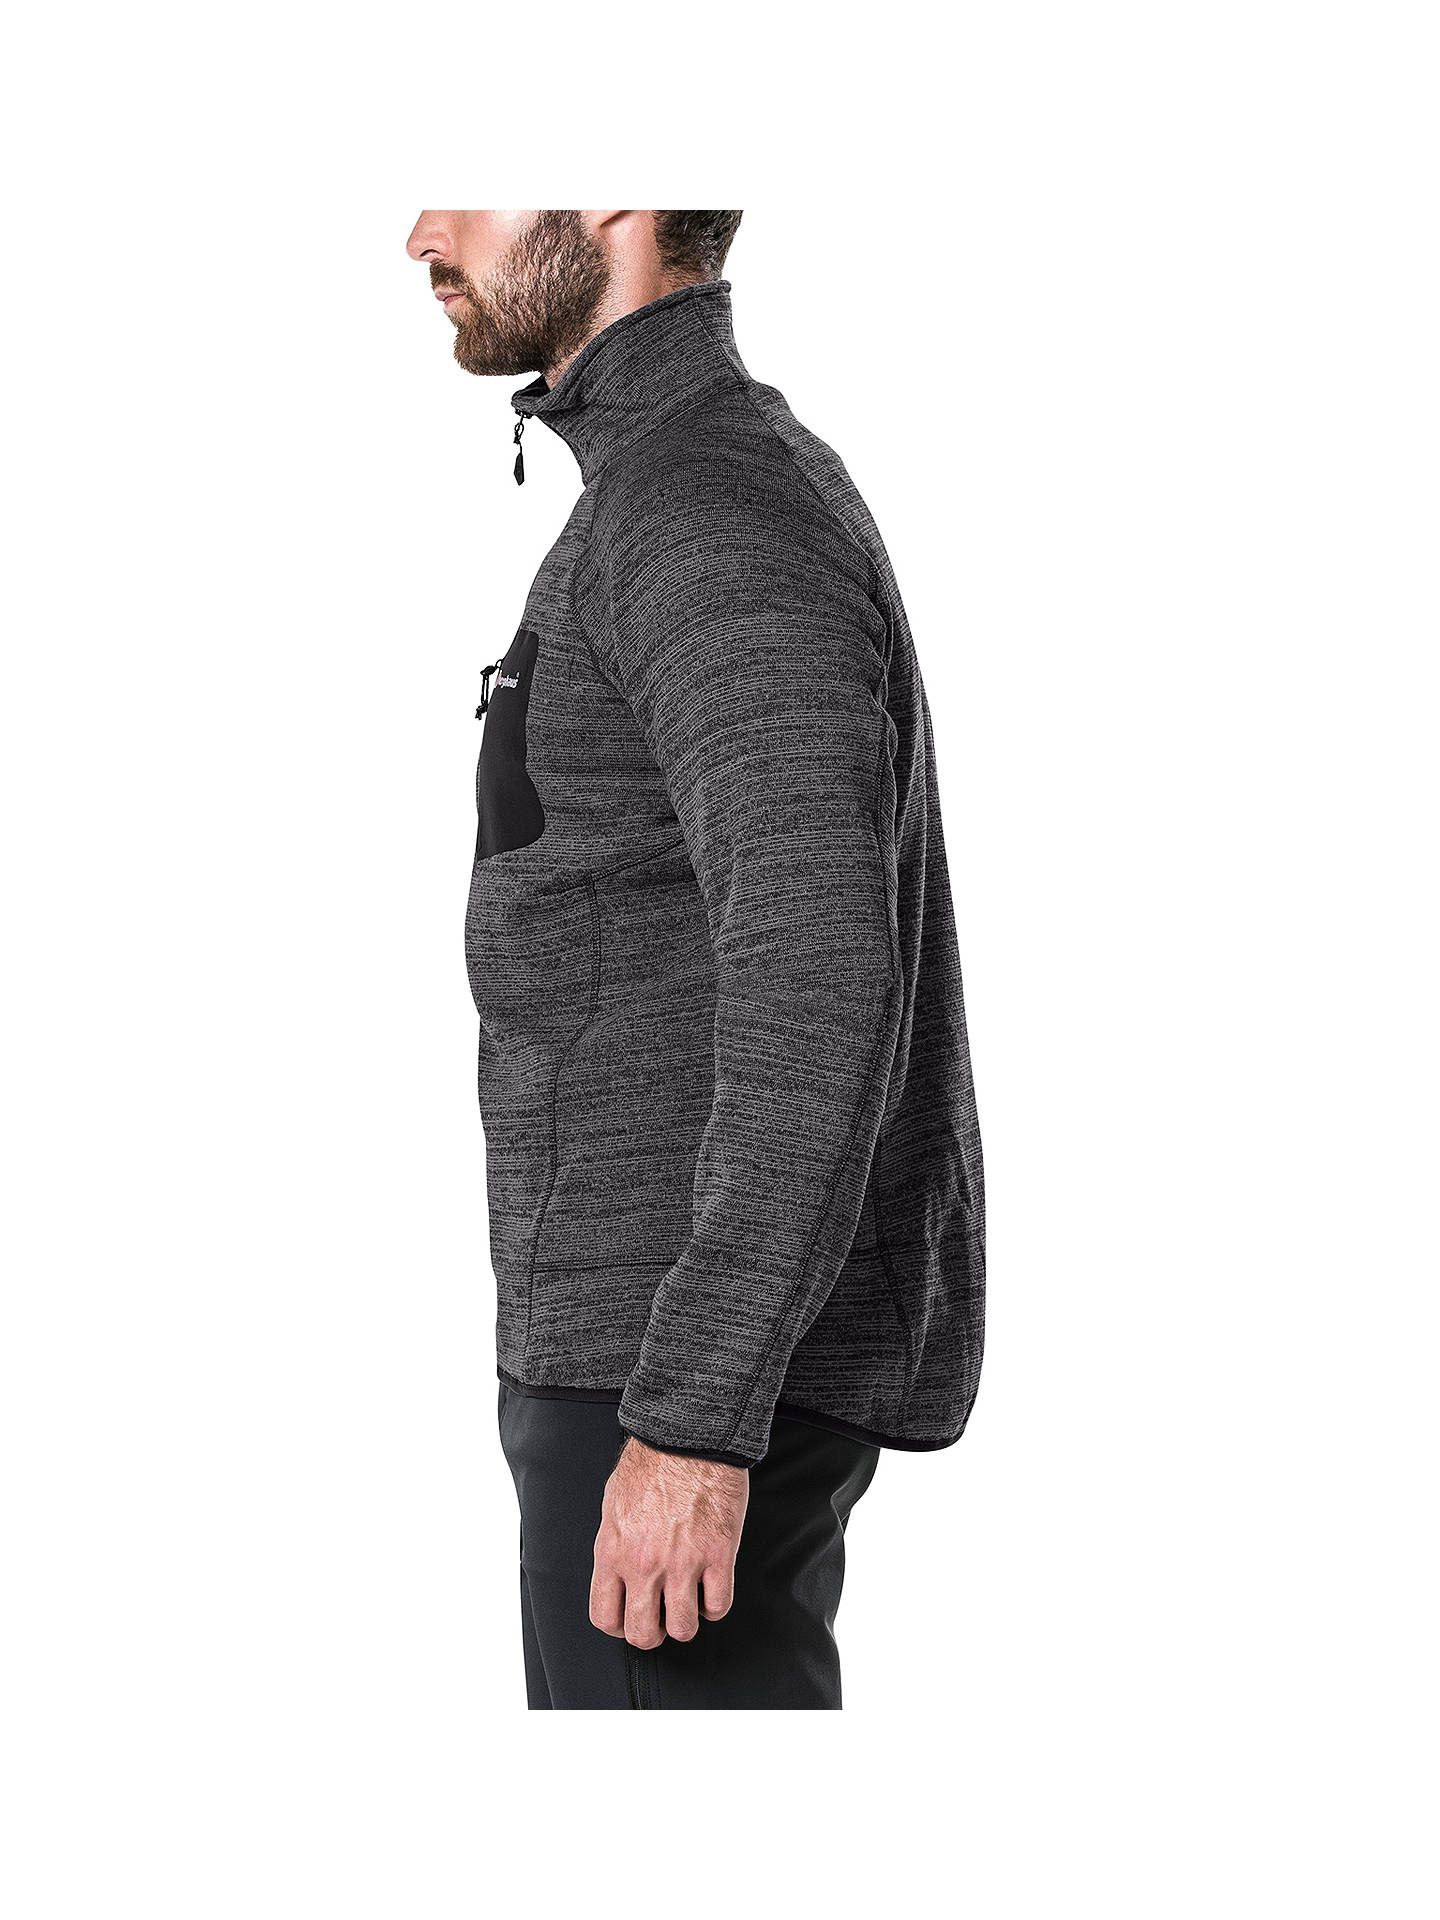 BuyBerghaus Tulach 2.0 Men's Fleece, Black, S Online at johnlewis.com